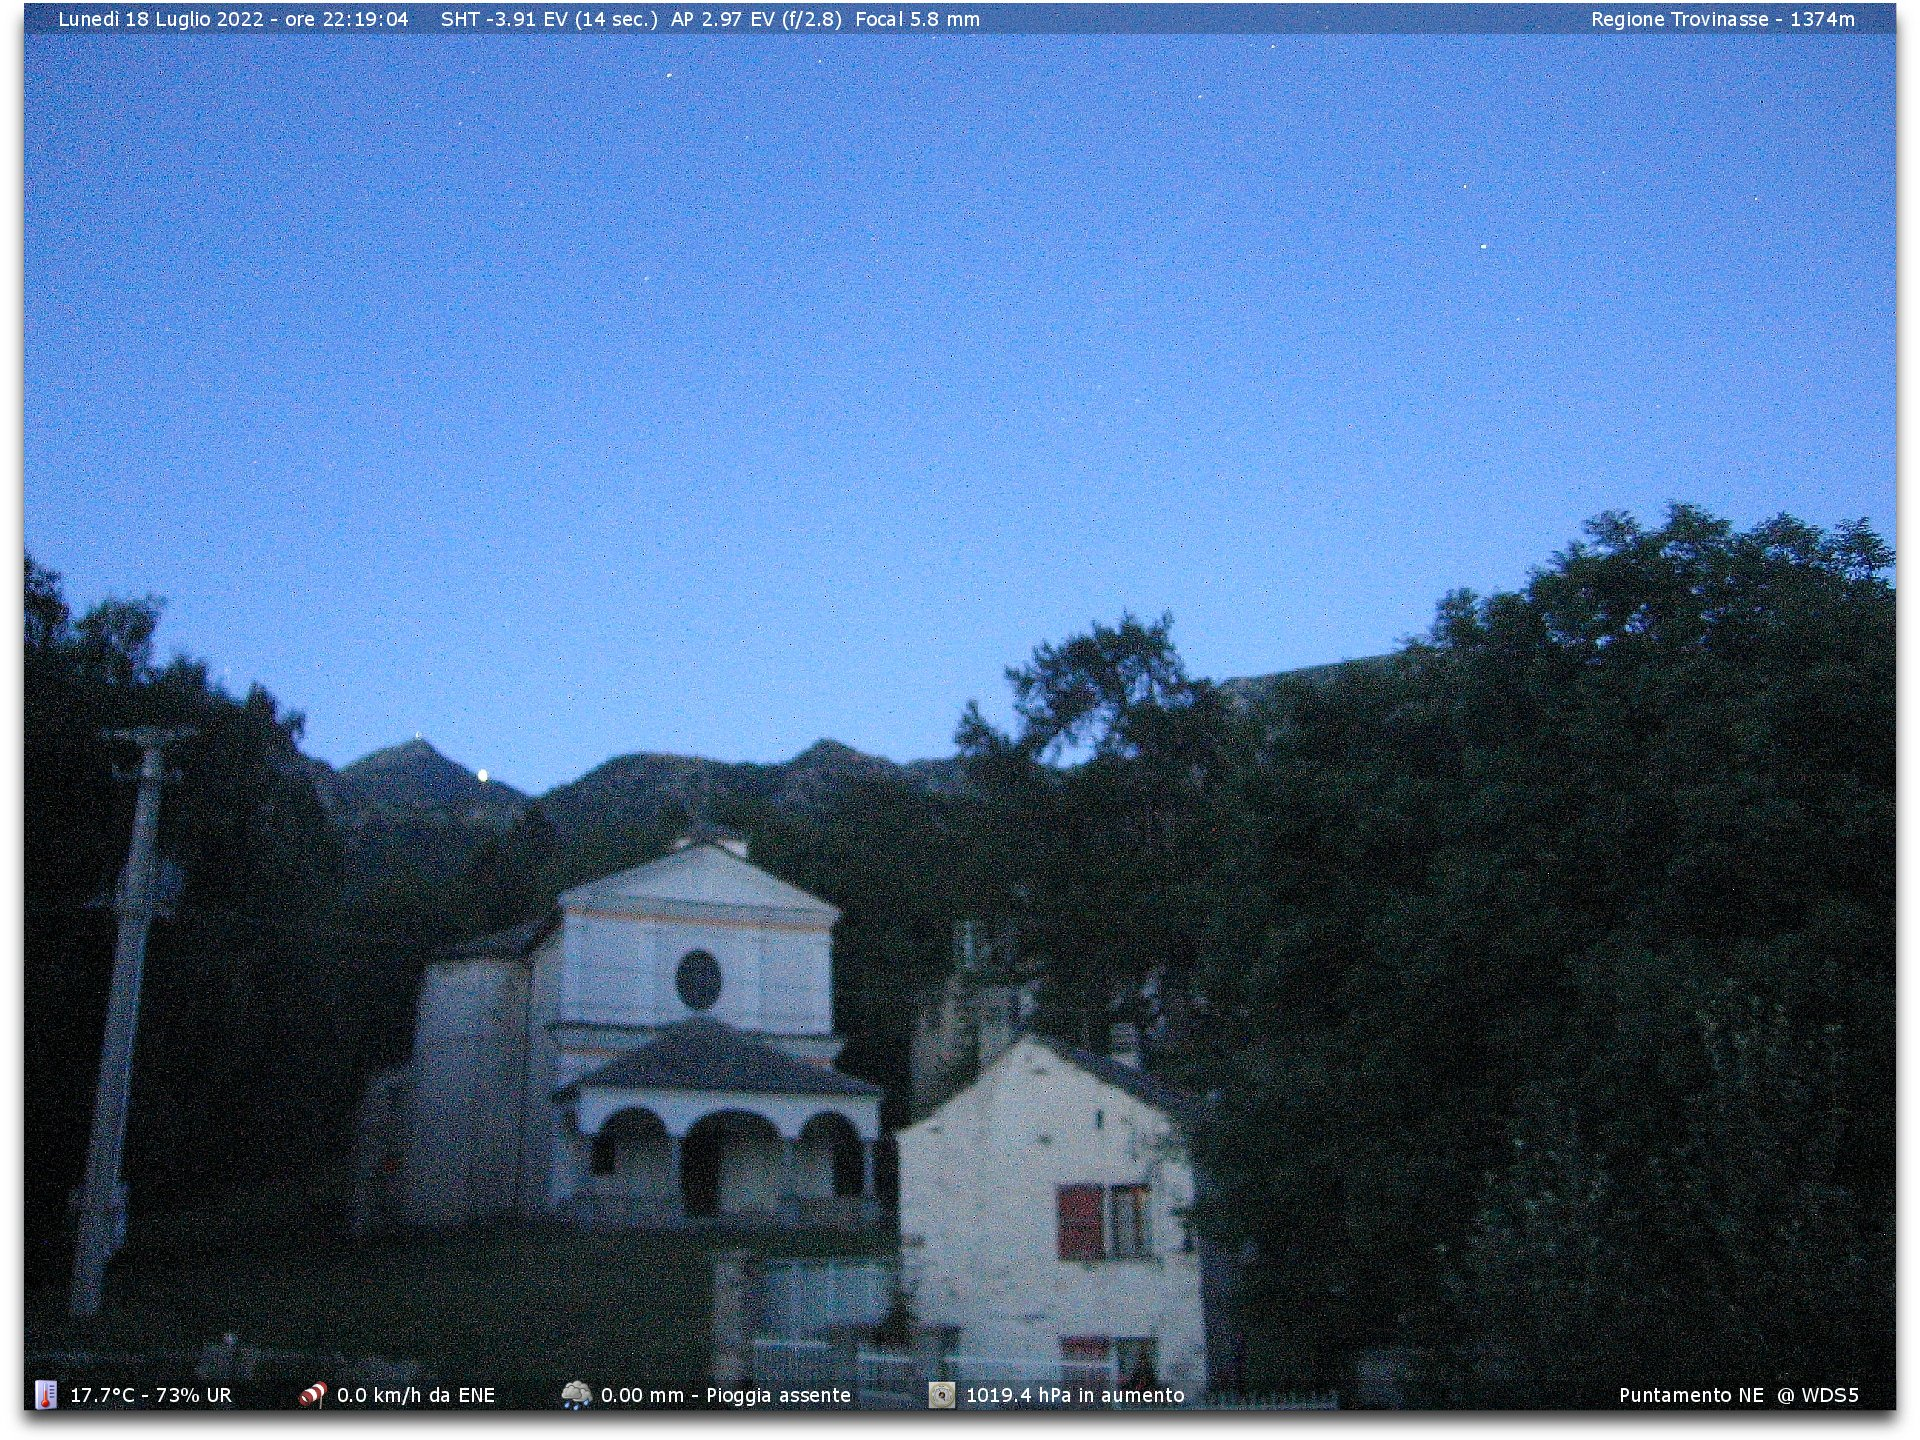 Webcam settimo vittone to trovinasse 1754 m meteo for Diretta camera